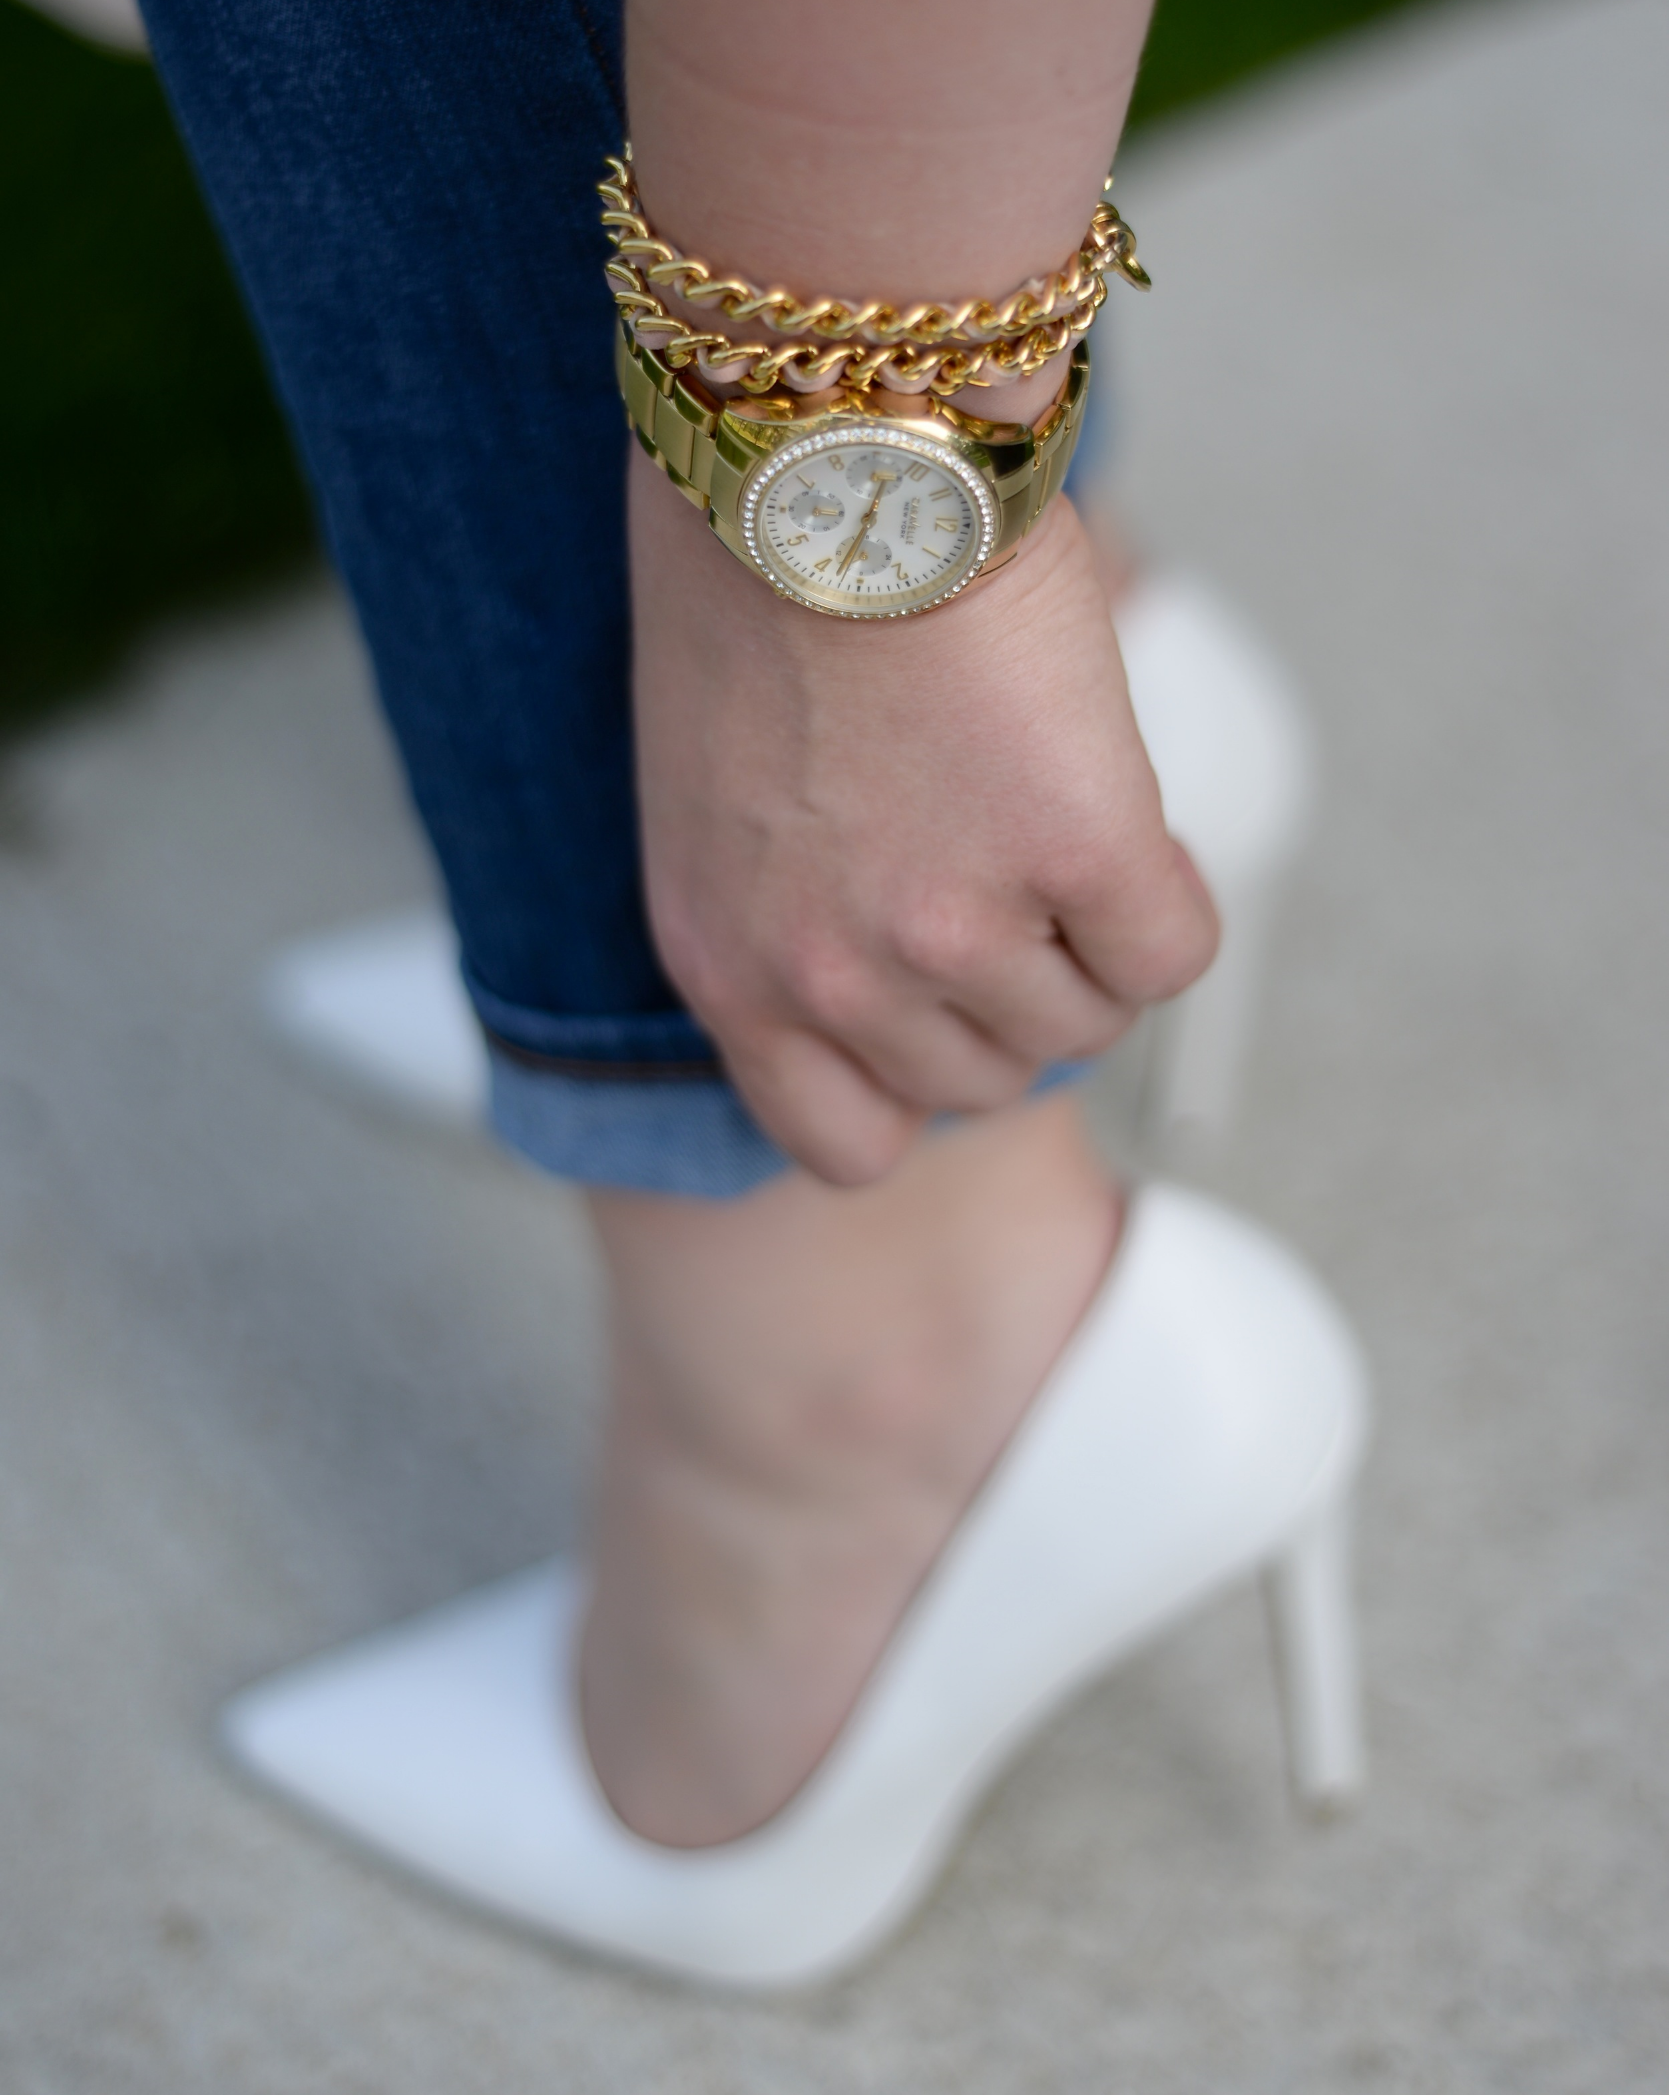 caravelle watch, white pumps, linzi shoes fashion